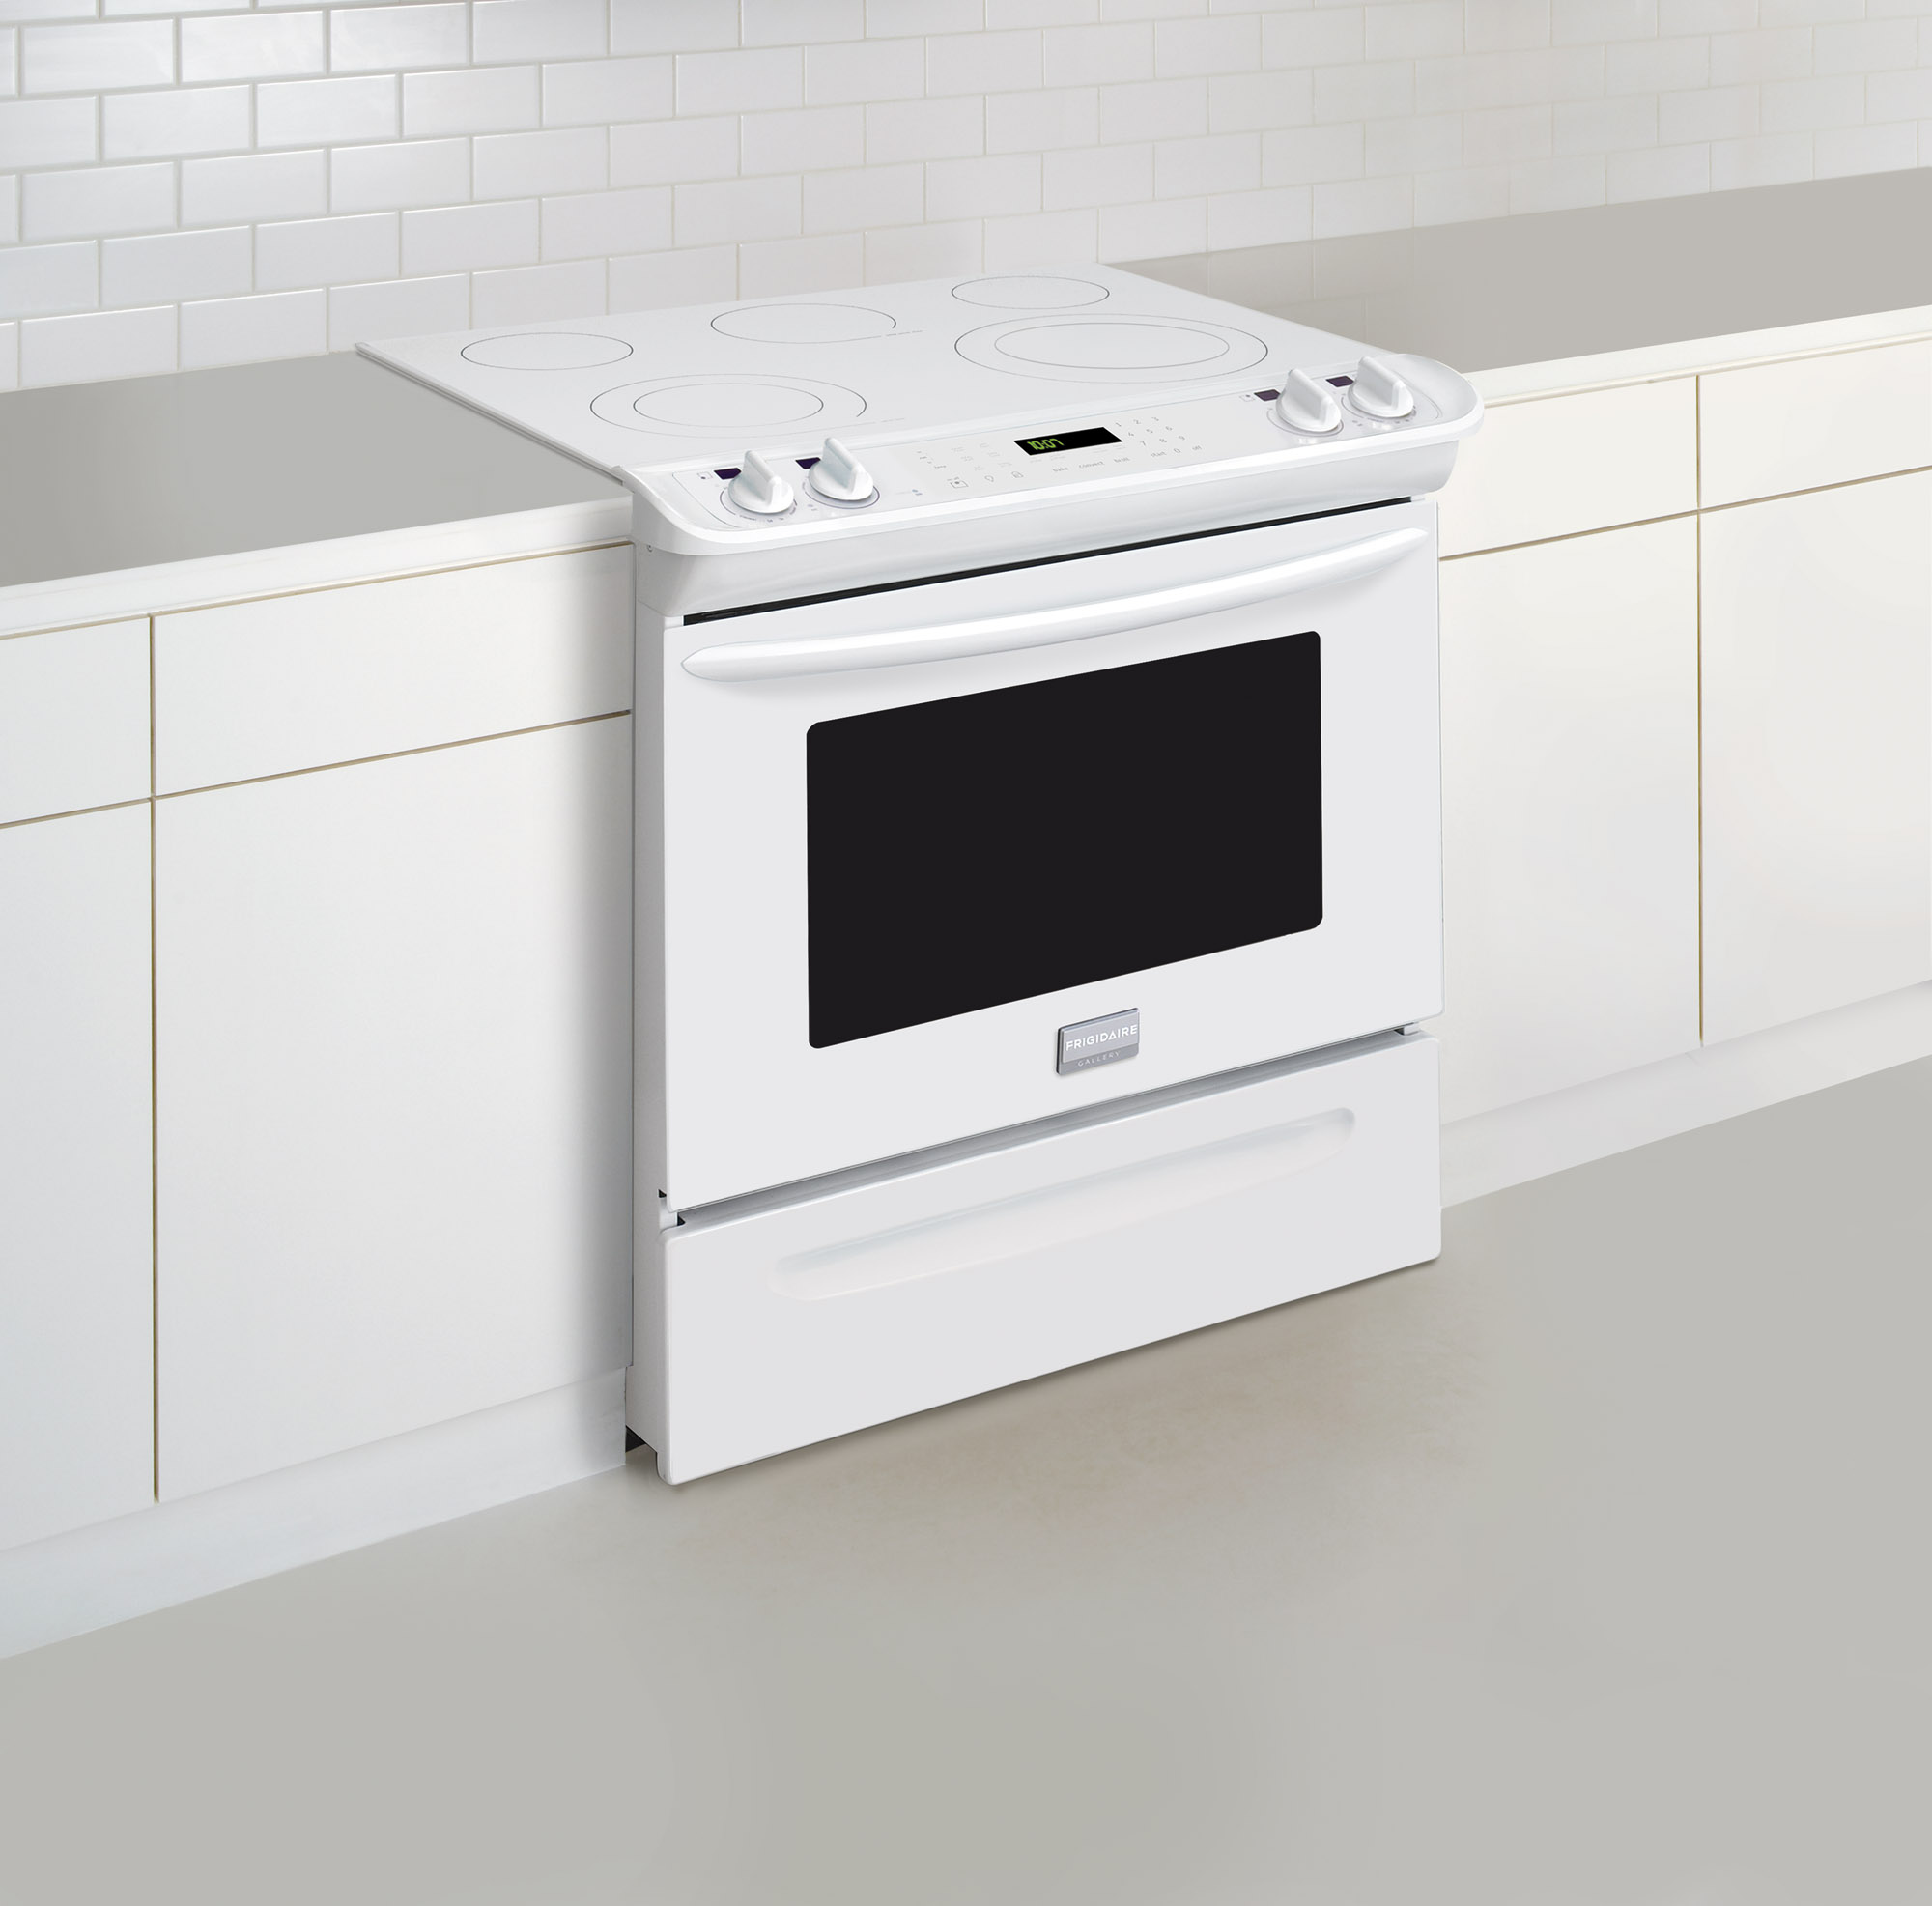 Frigidaire FGES3065PW Gallery 4.6 cu. ft. Slide-In Electric Range - White